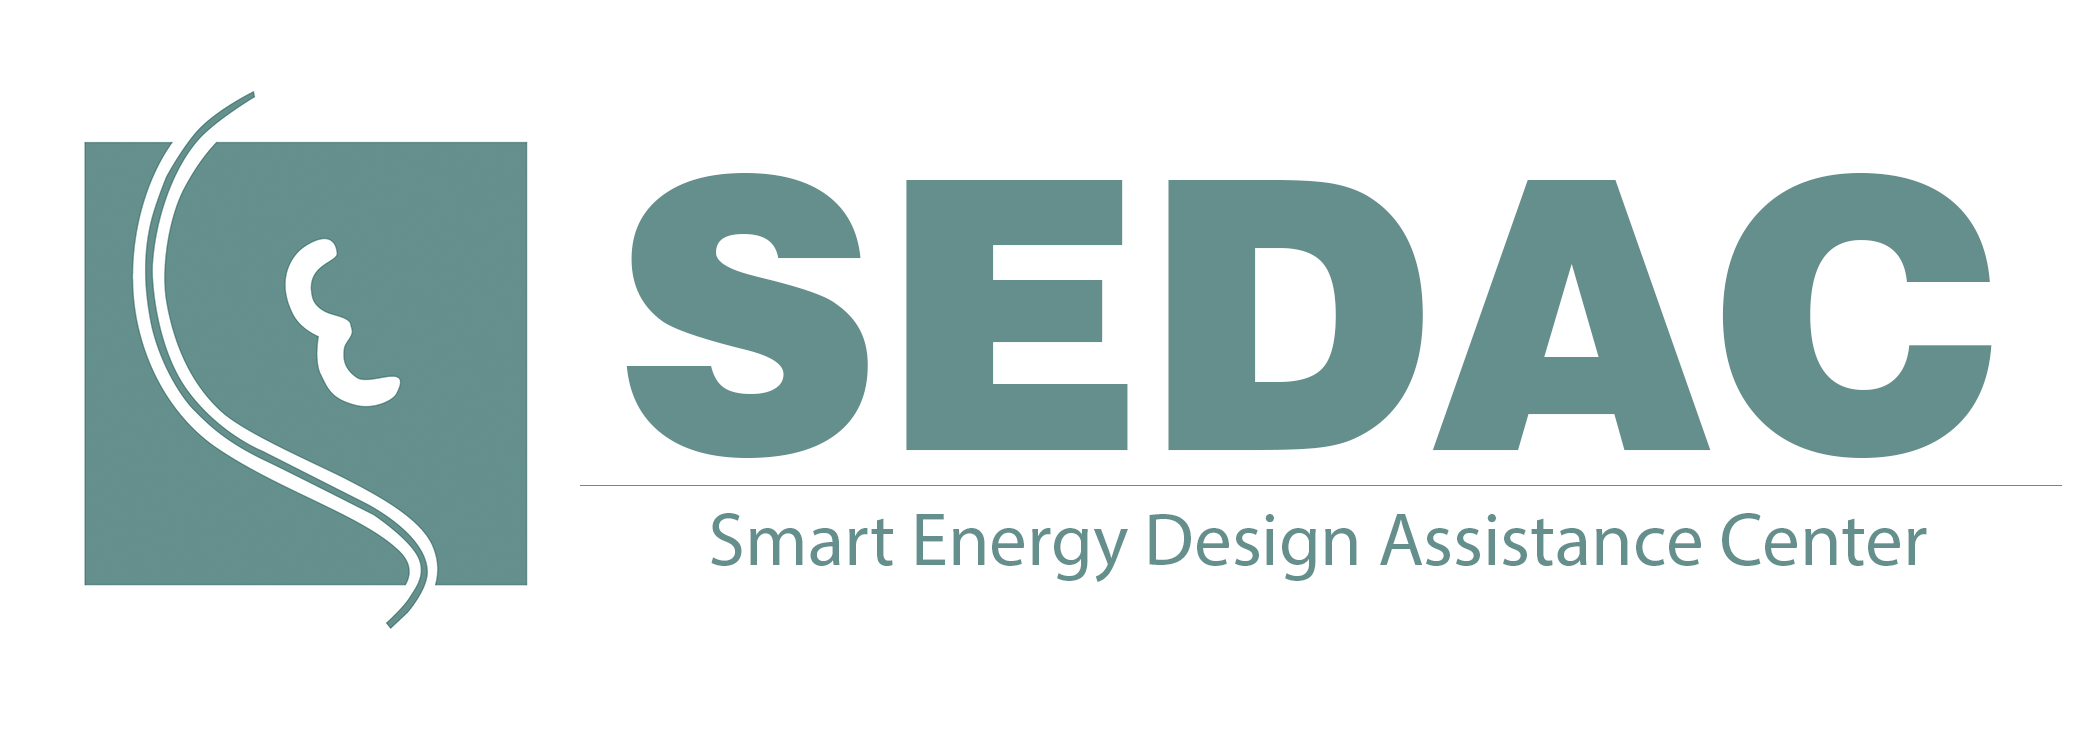 Smart Energy Design Assistance Center